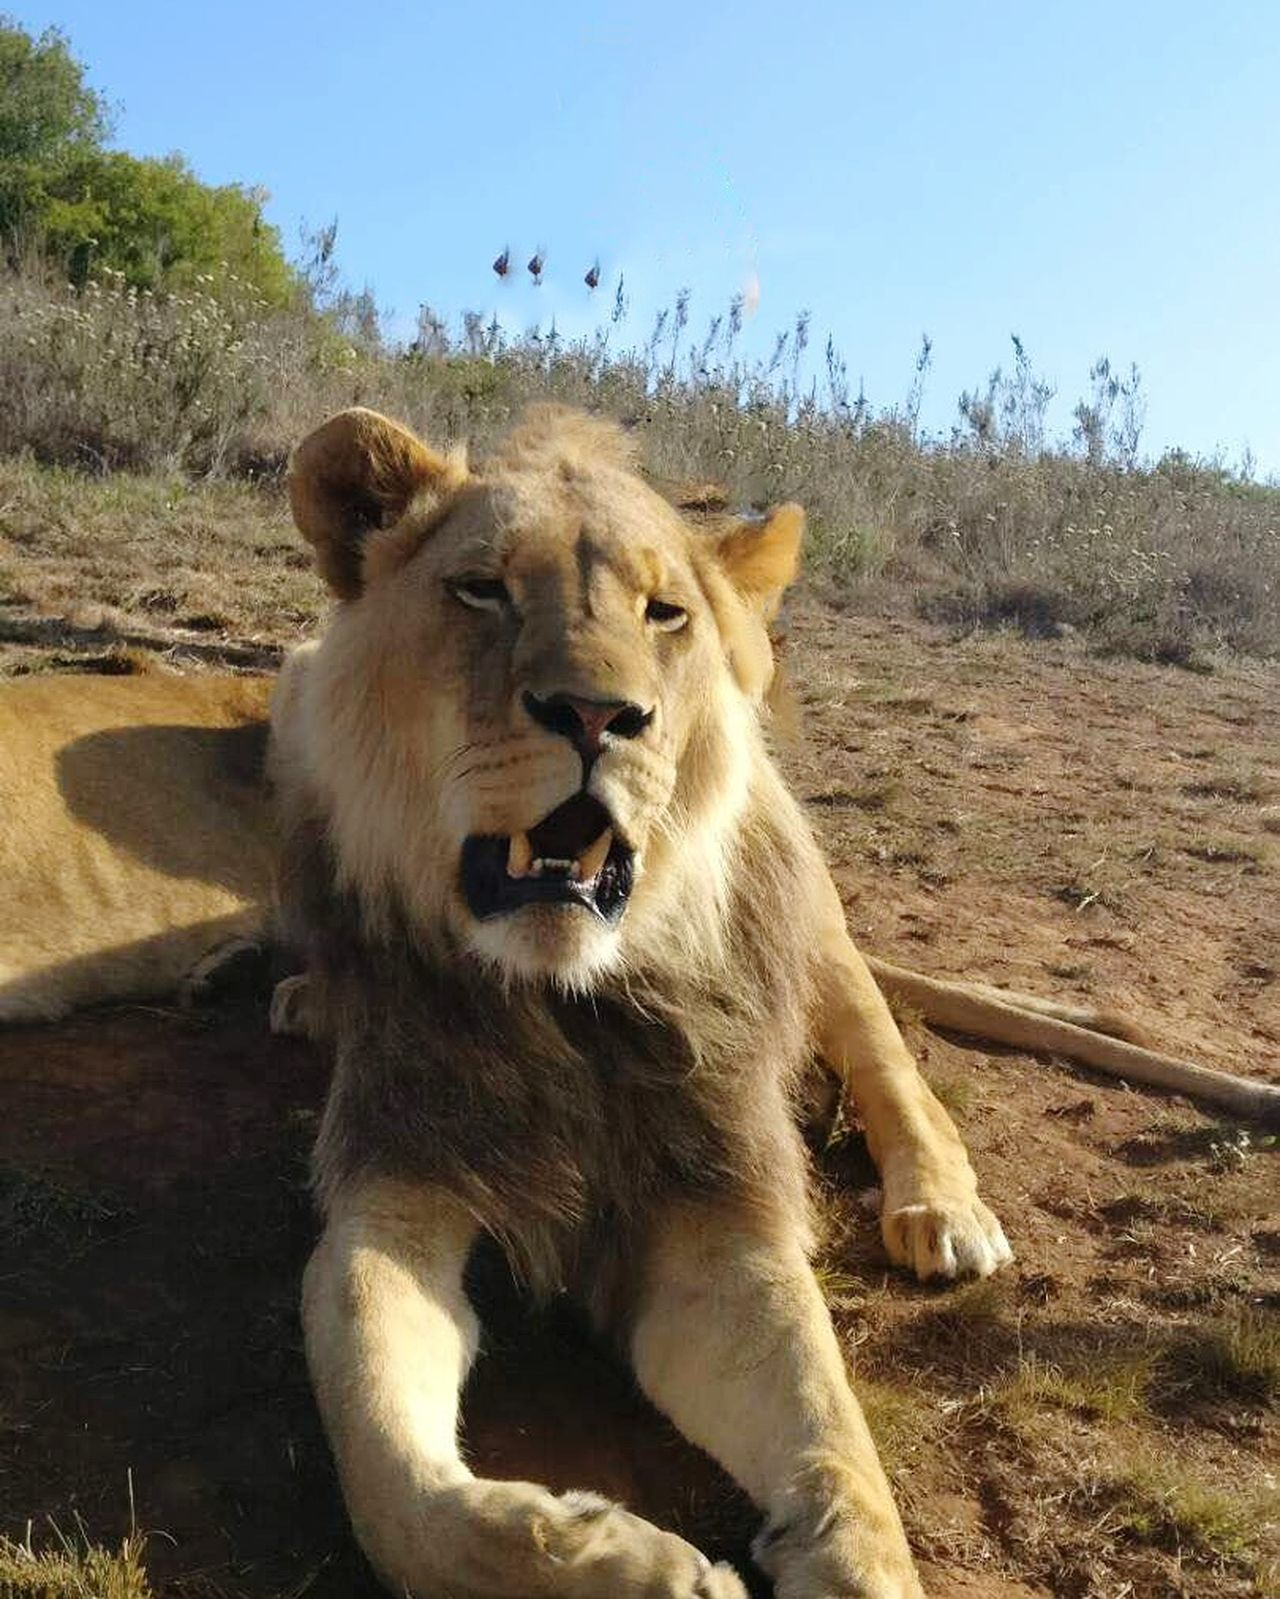 Animals In The Wild One Animal Mammal Animal Wildlife Animal Lion - Feline Animal Themes Outdoors Day No People Nature Portrait Sky Close-up Sunlight Lioness Grass EyeEmNewHere Travel Destinations Lions Lion Lion King  Outdoor Photography Nature Animals In The Wild